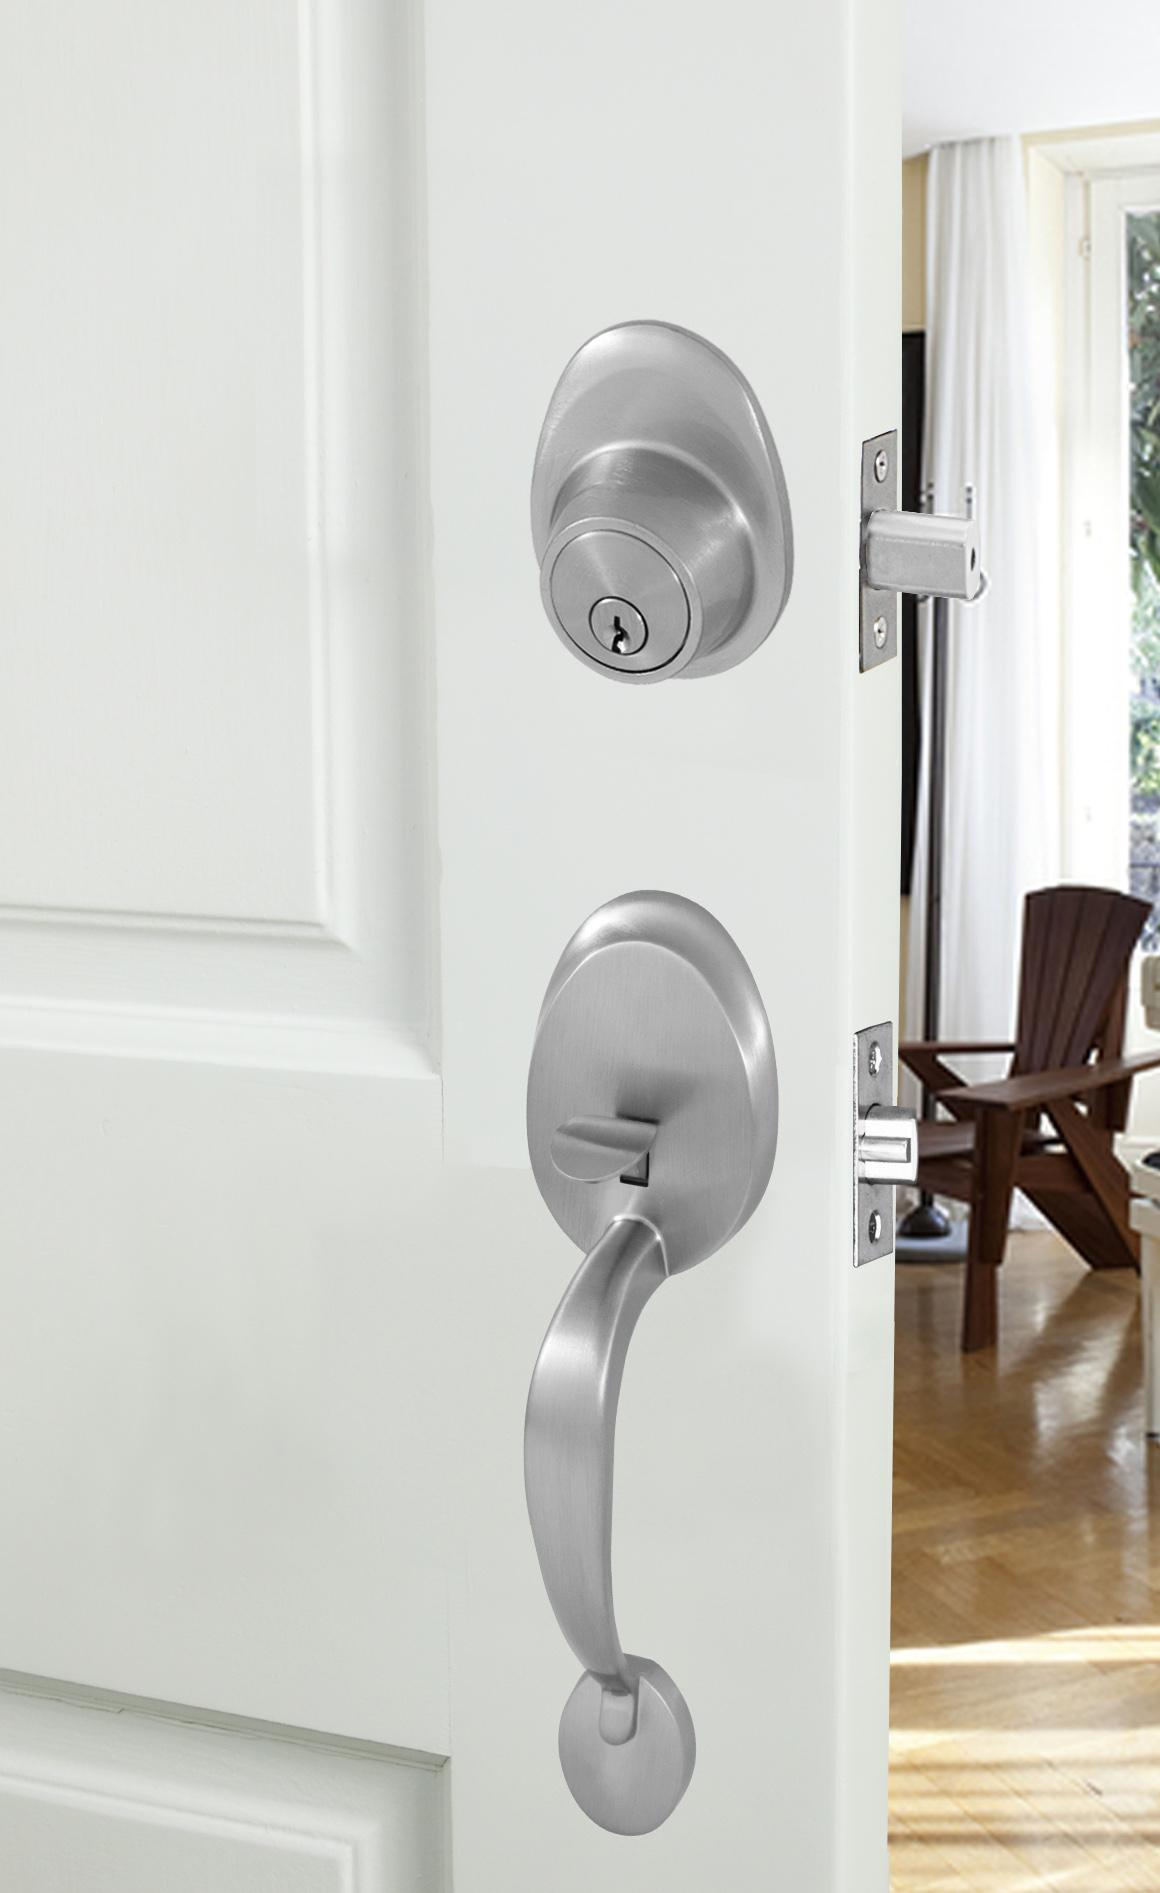 knob z doors n cover full size kwikset photos adt wave door frightening throughout ideas twist of grip locks